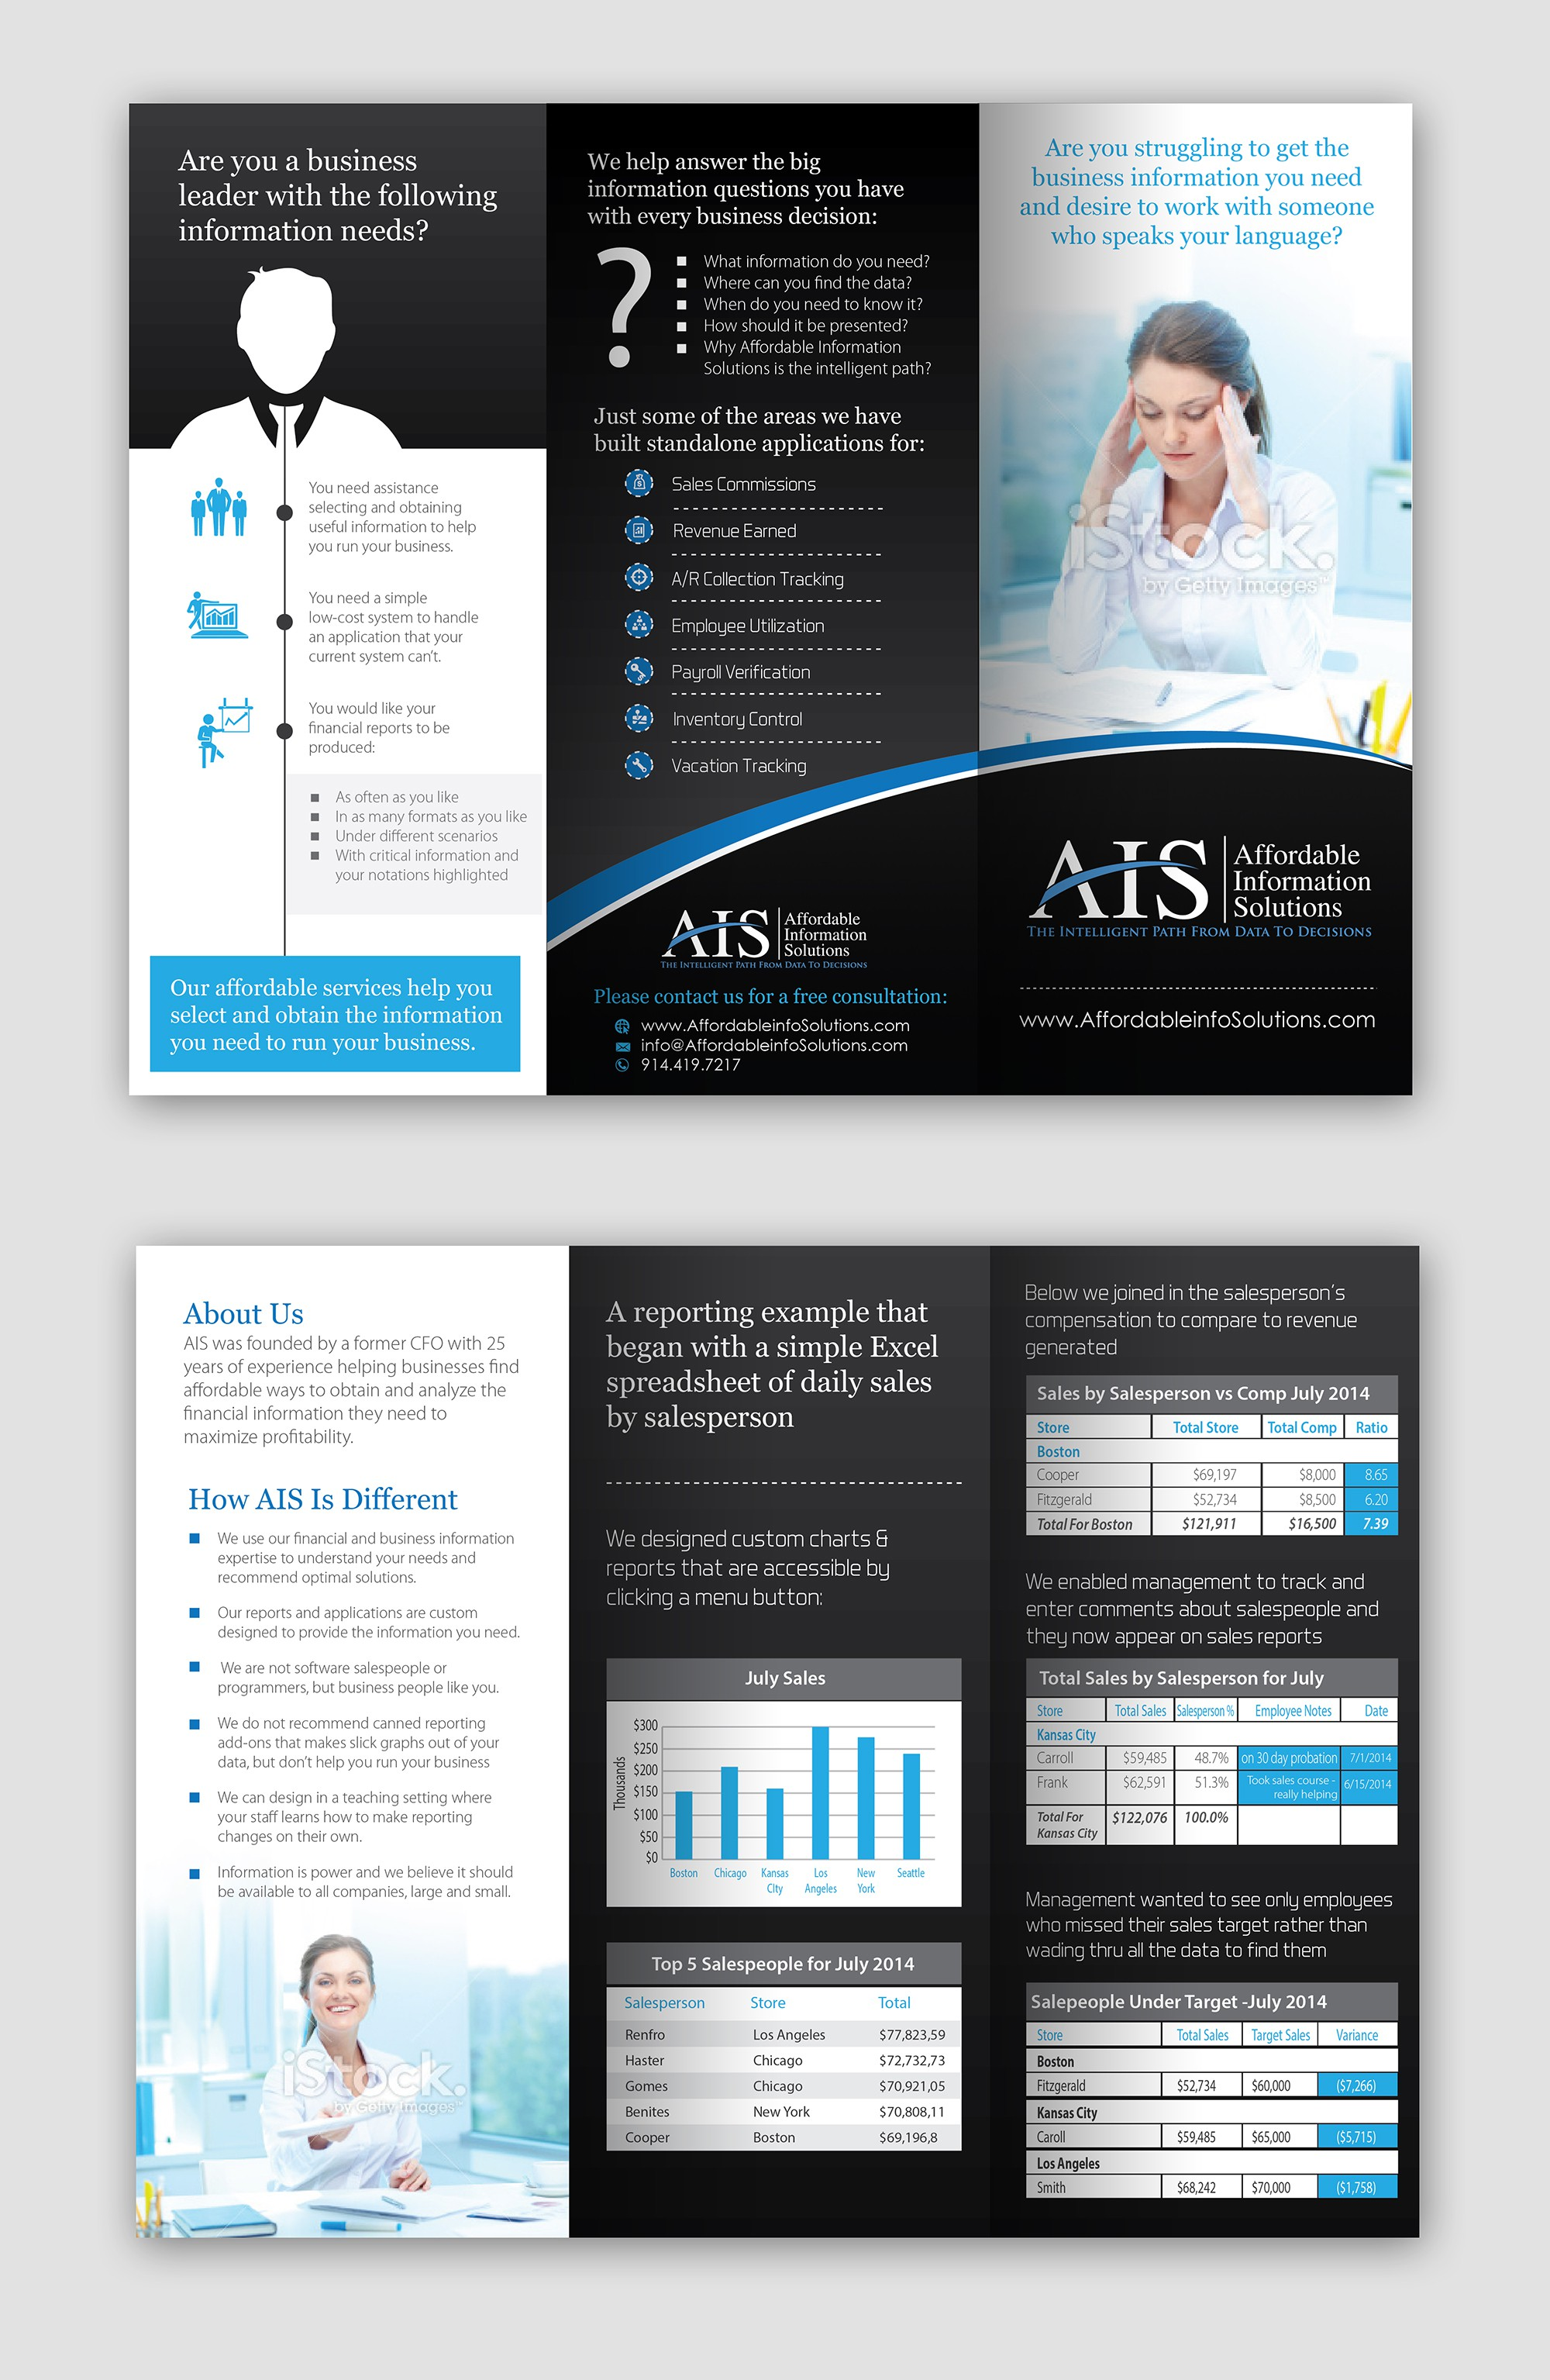 Create a brochure for a company I am trying to start - Affordable Information Solutions